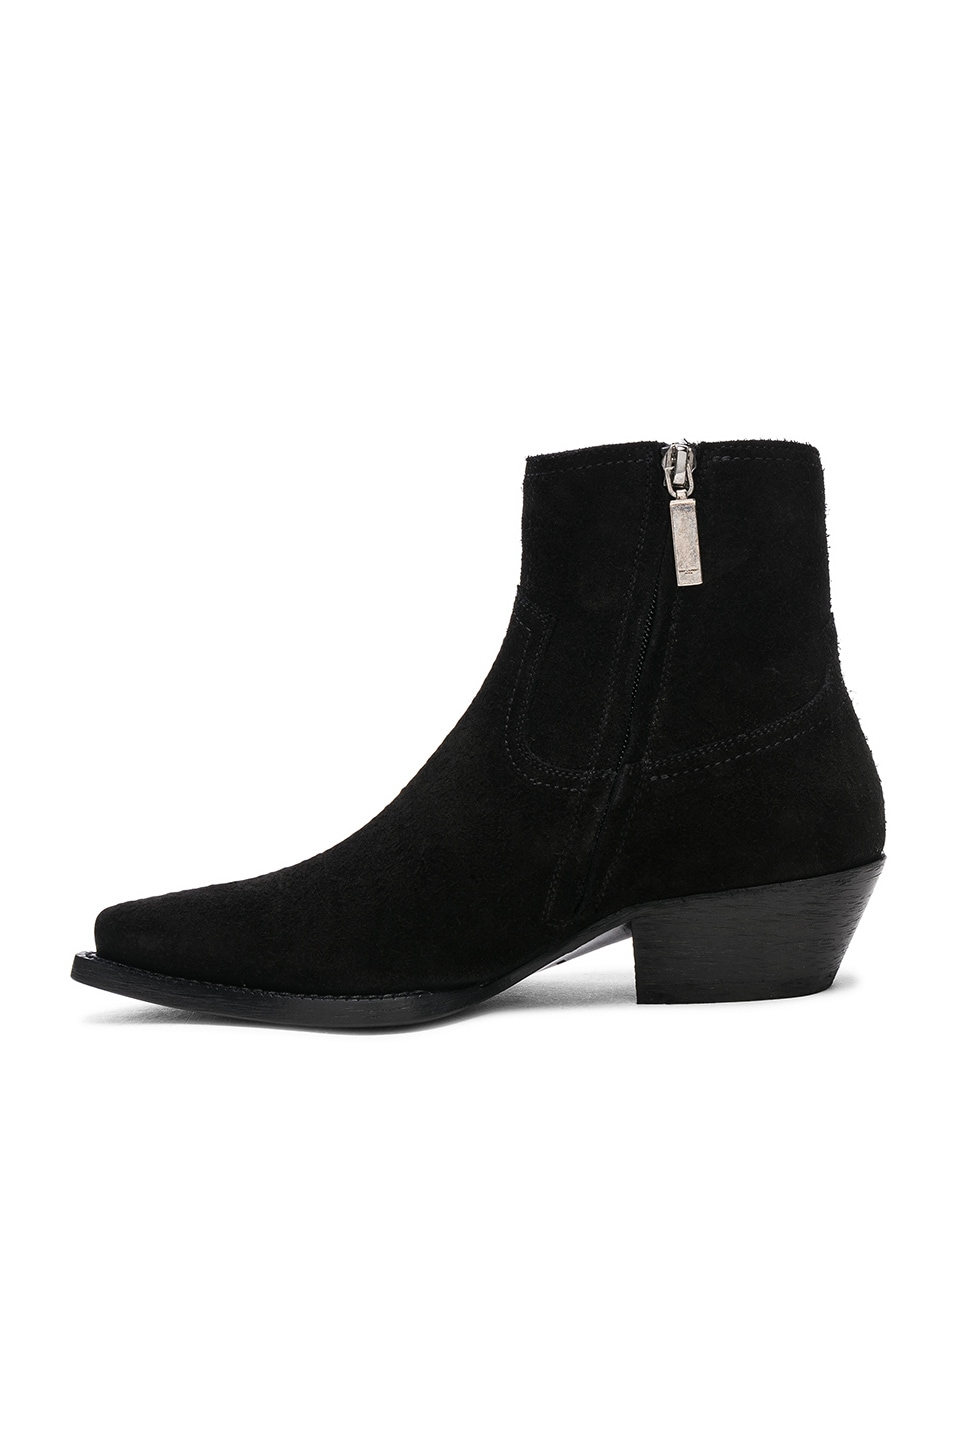 Image 5 of Saint Laurent Suede Lukas Western Boots in Black